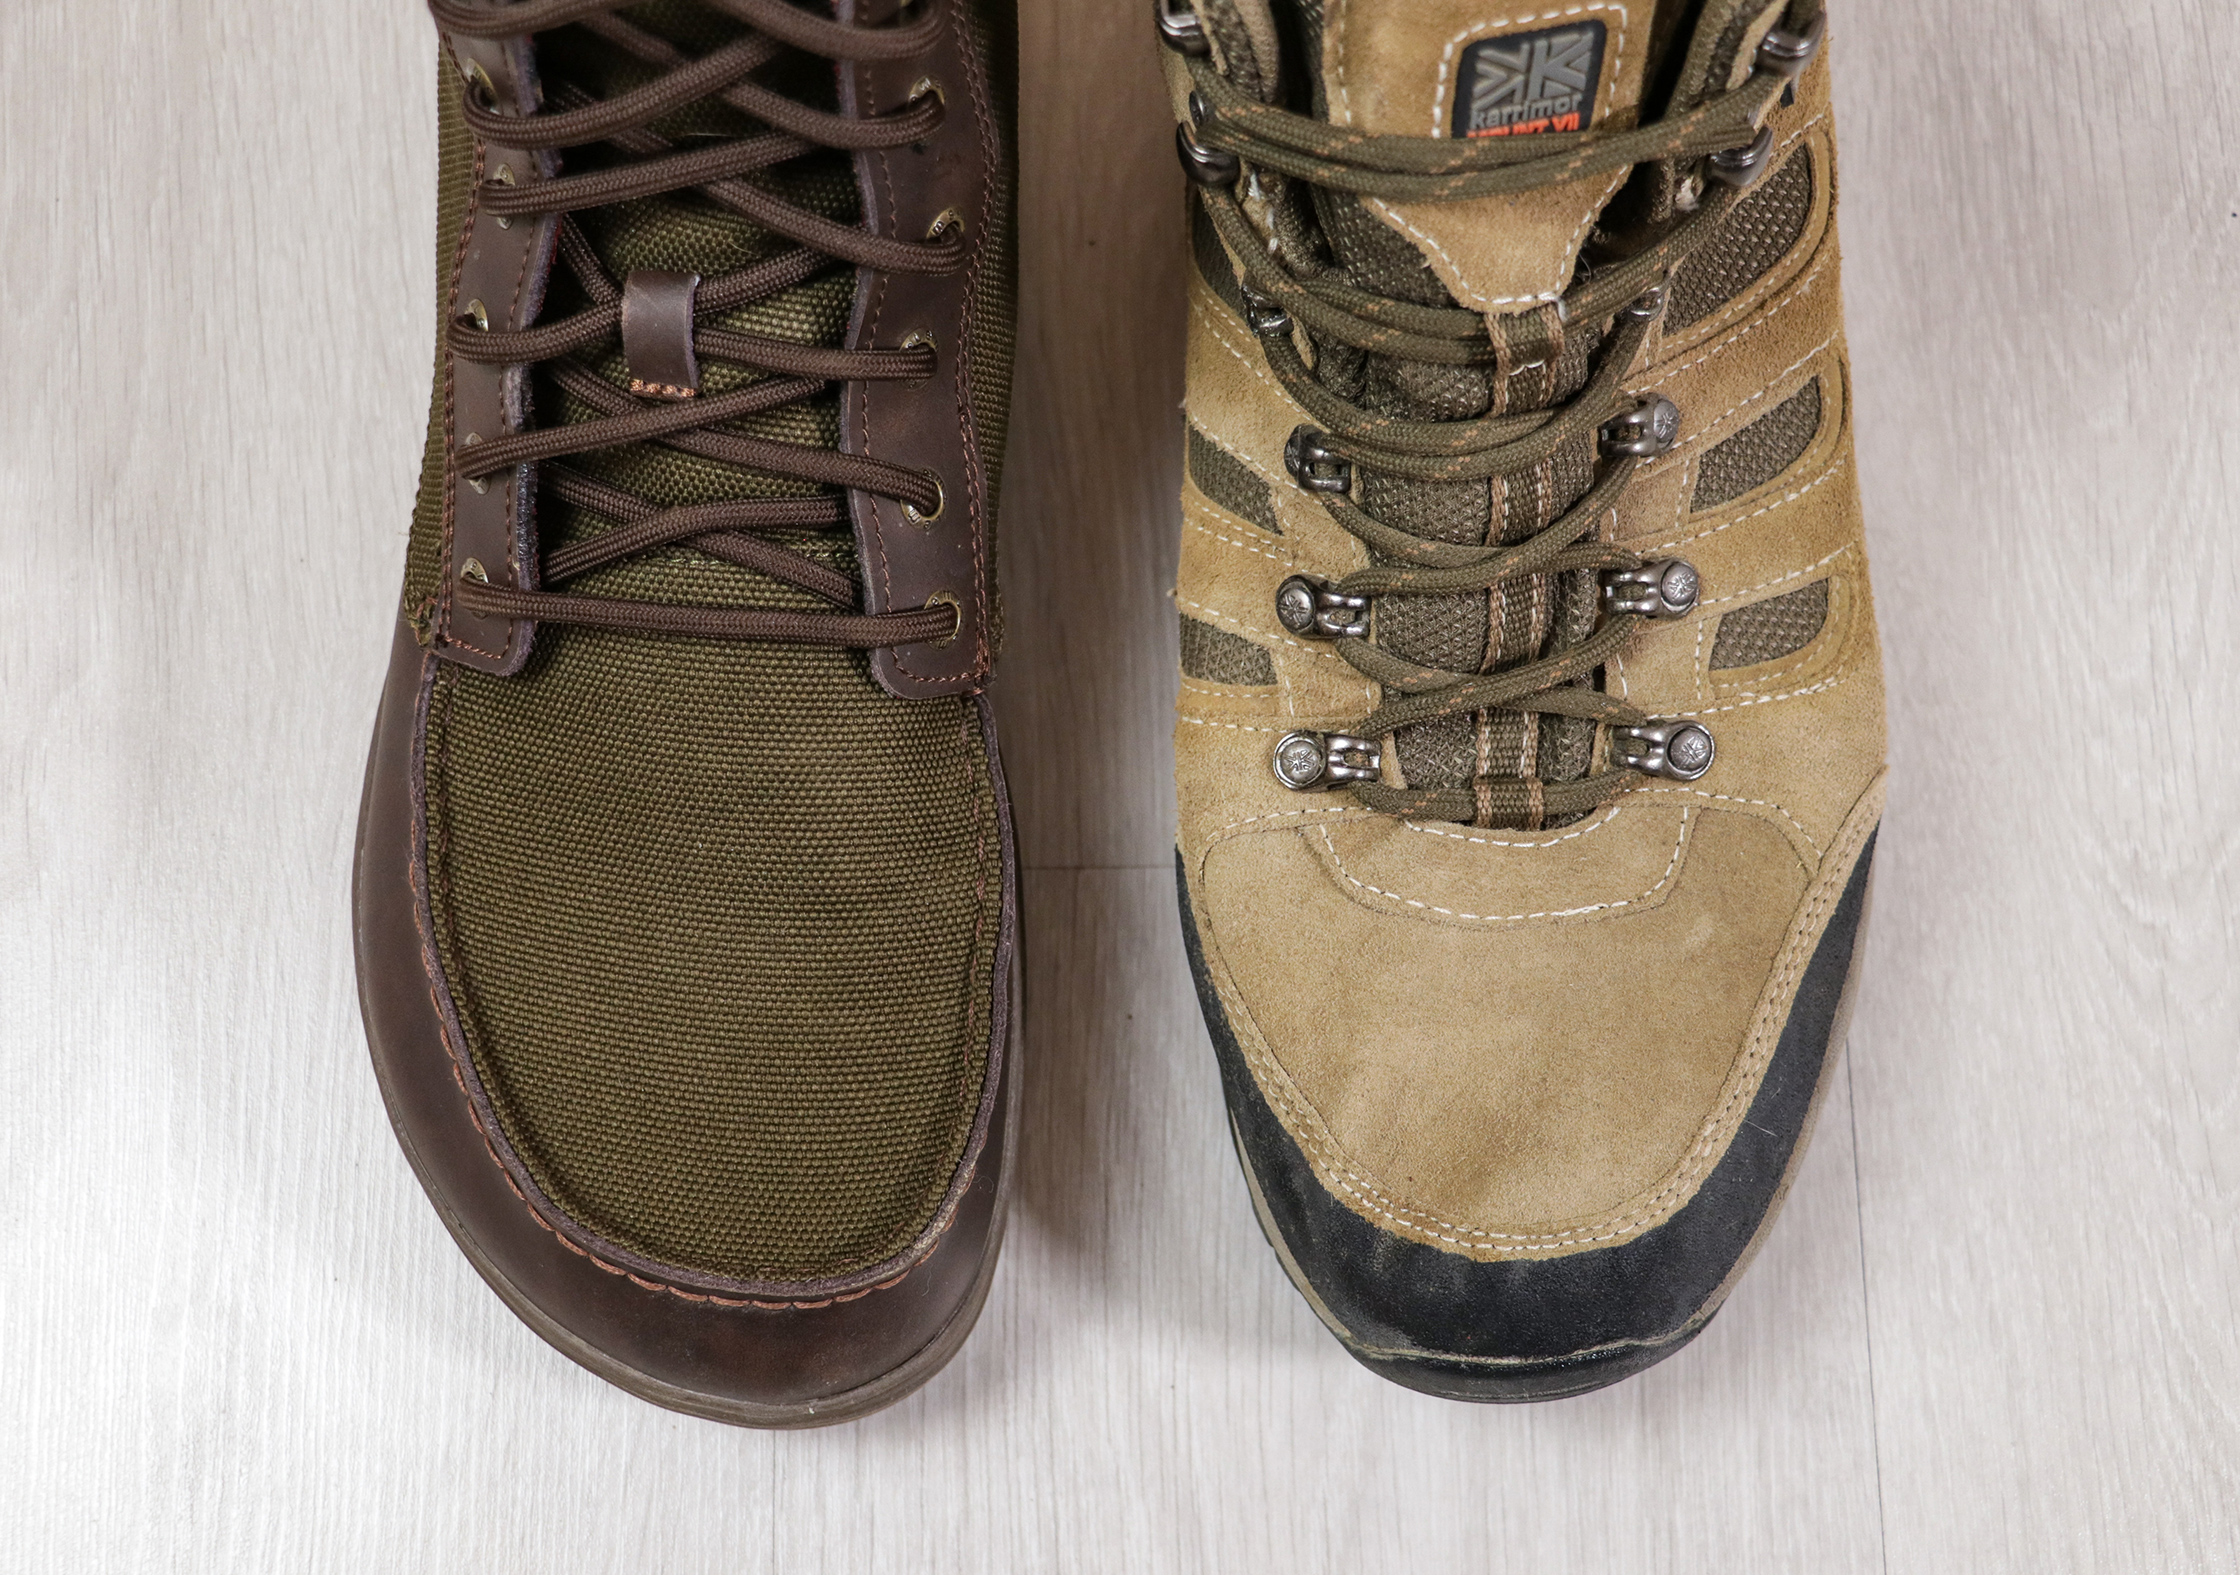 Lems Boulder Boot Toe Box Vs A Traditional Boot